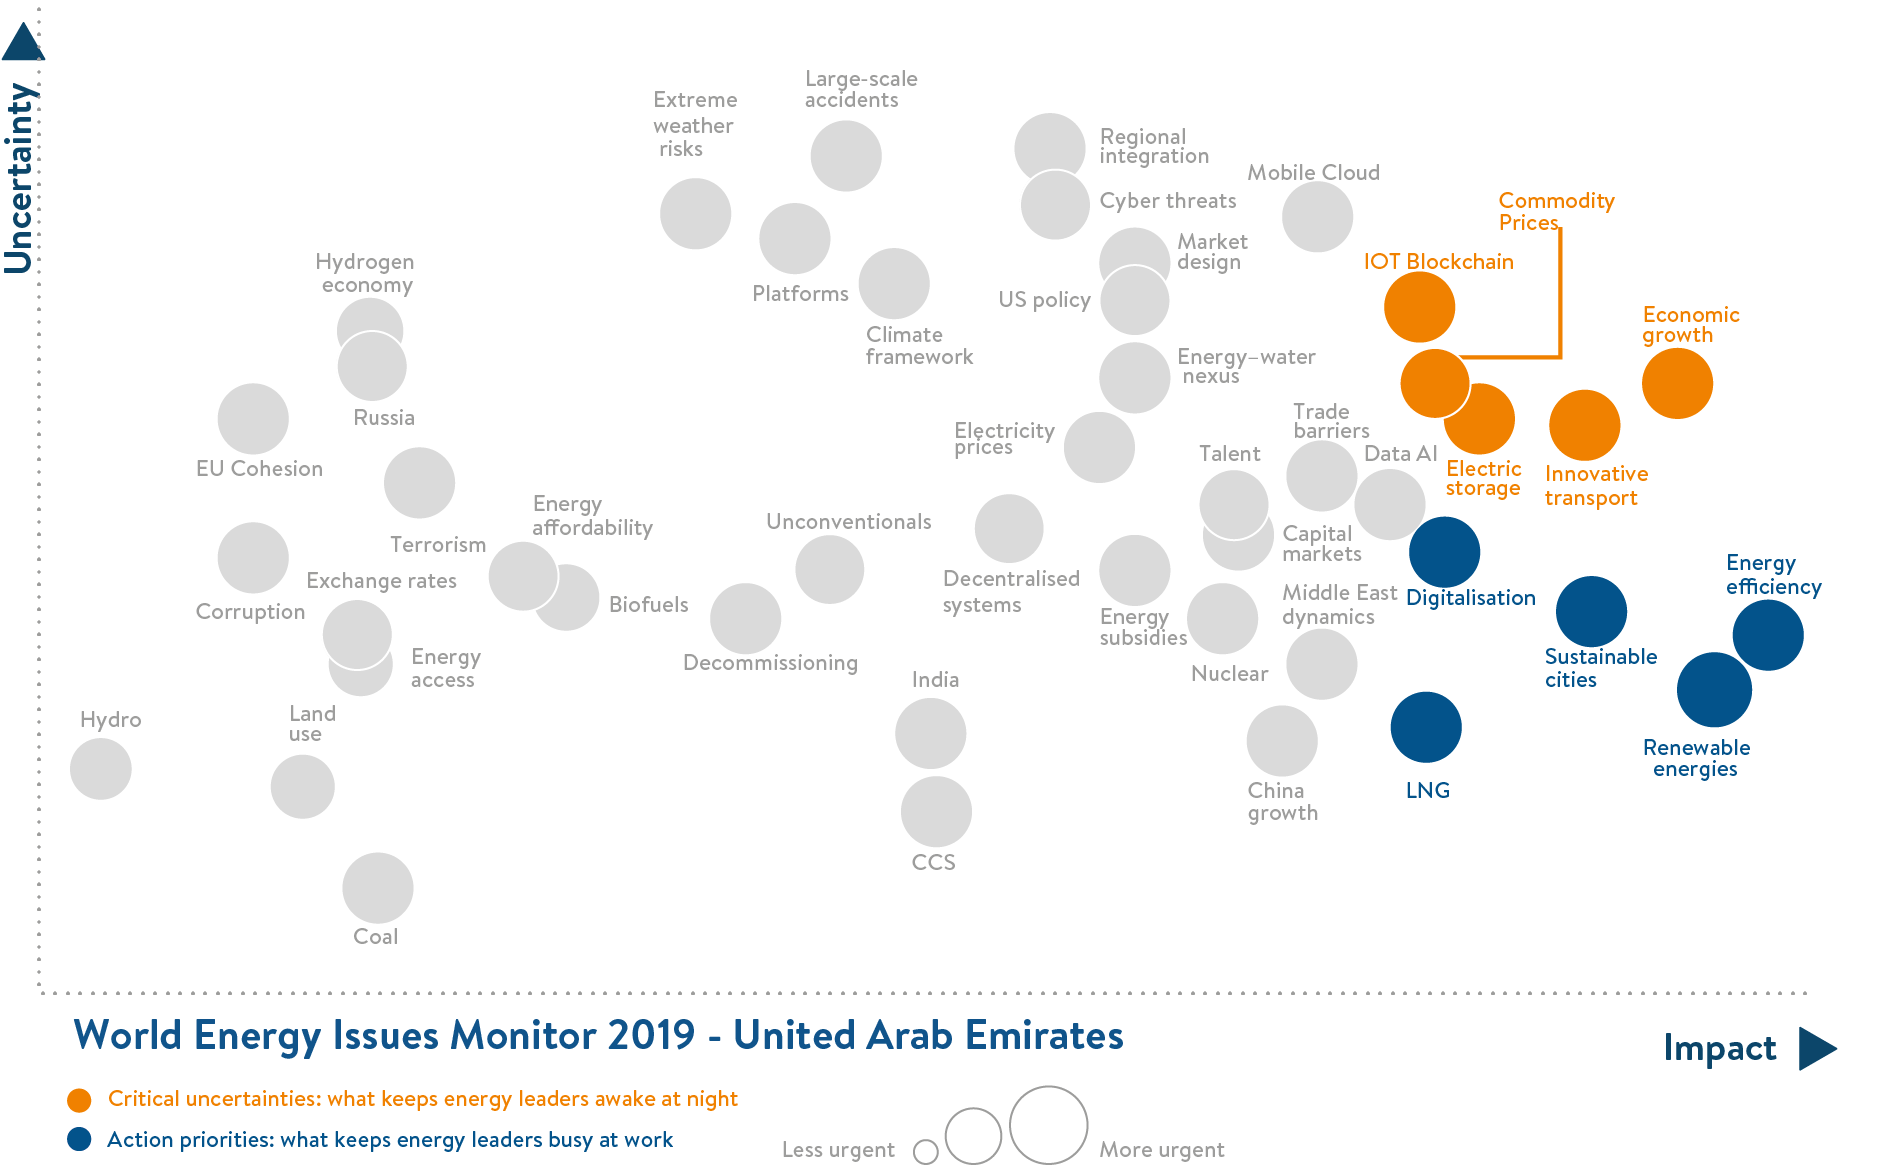 uae, critical uncertainties, action priorities, united arab emirates